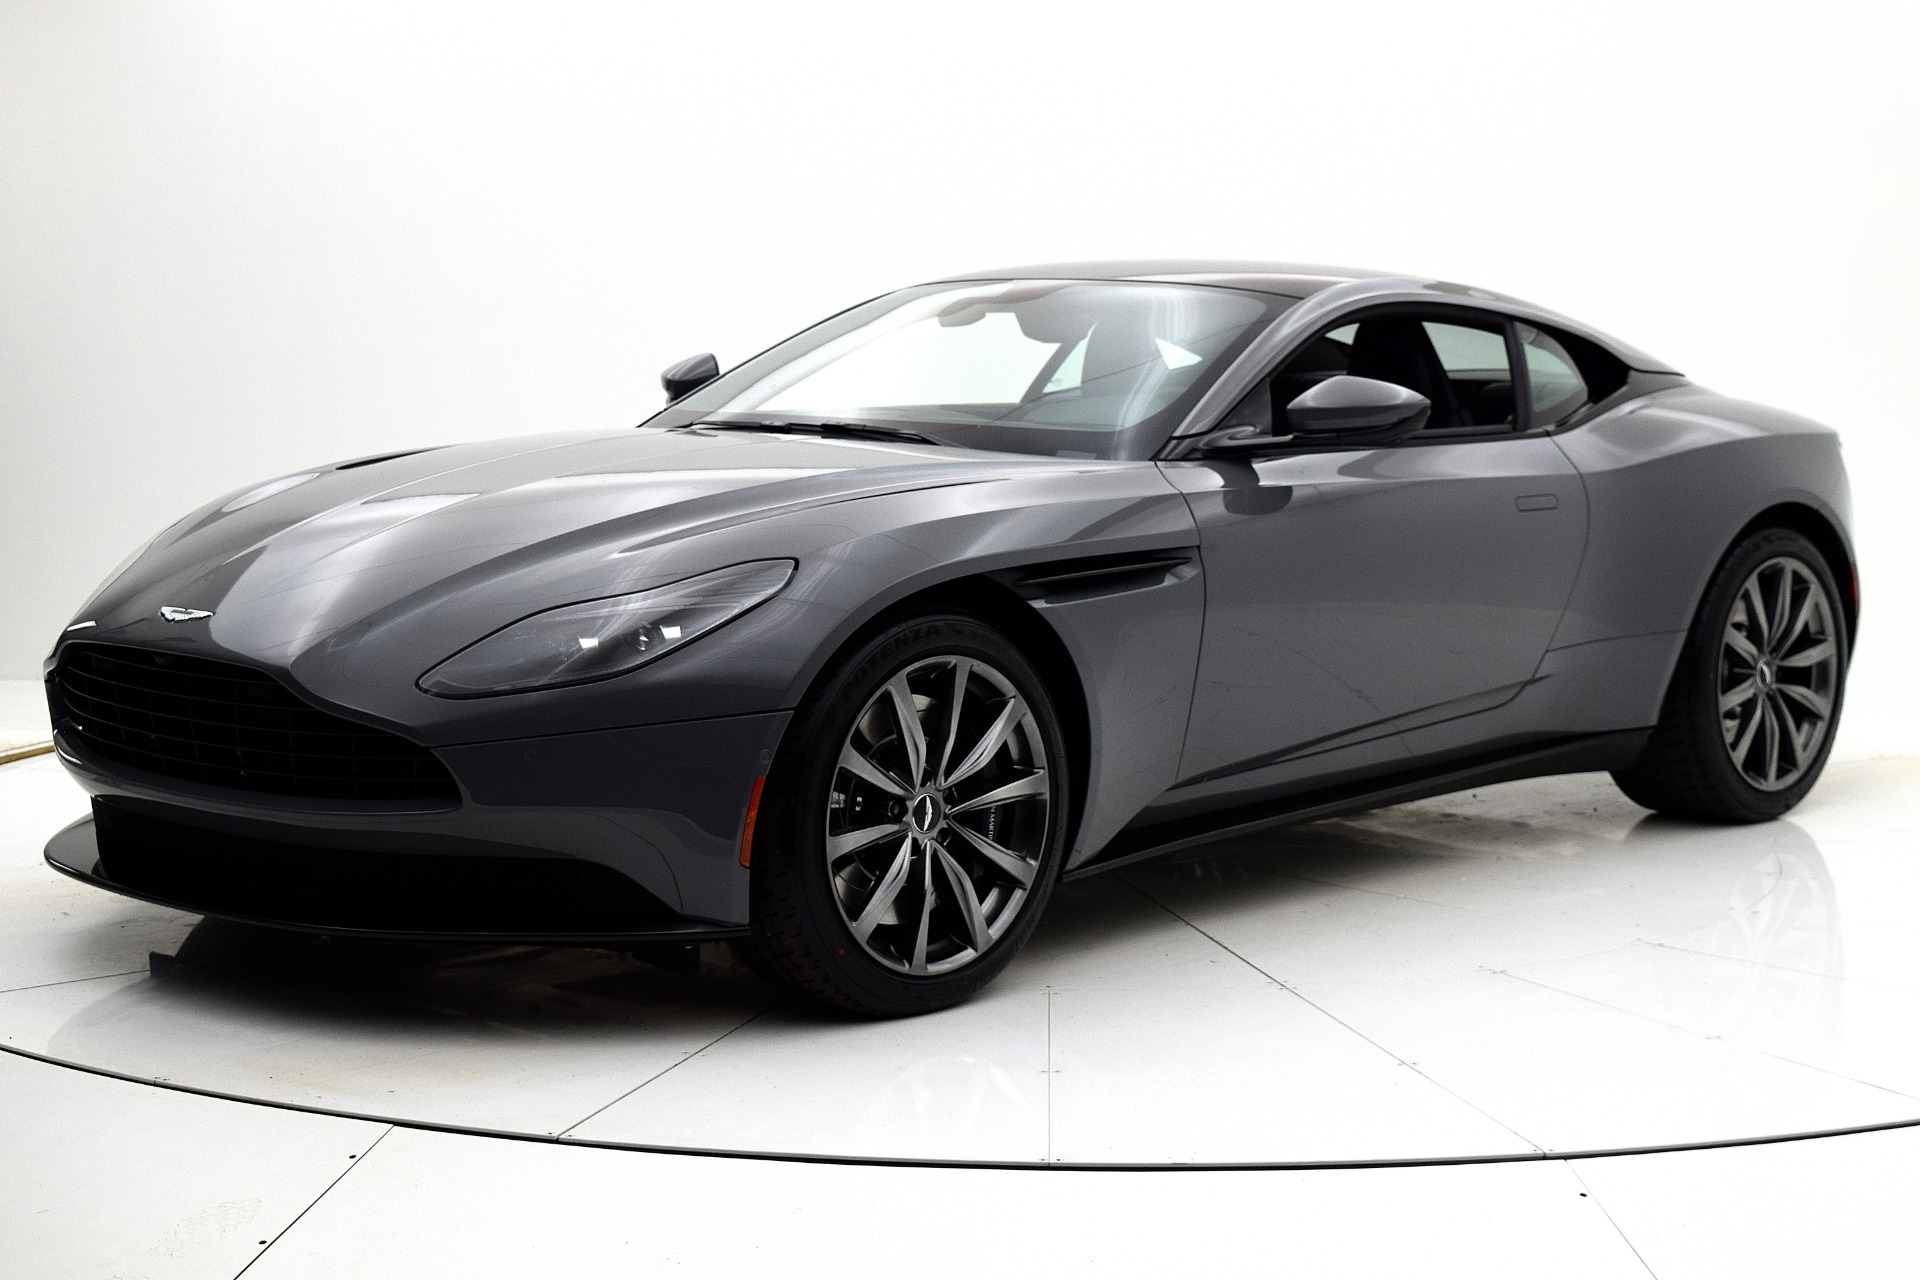 Aston Martin DB11 2018 For Sale $231534 Stock Number 18A117